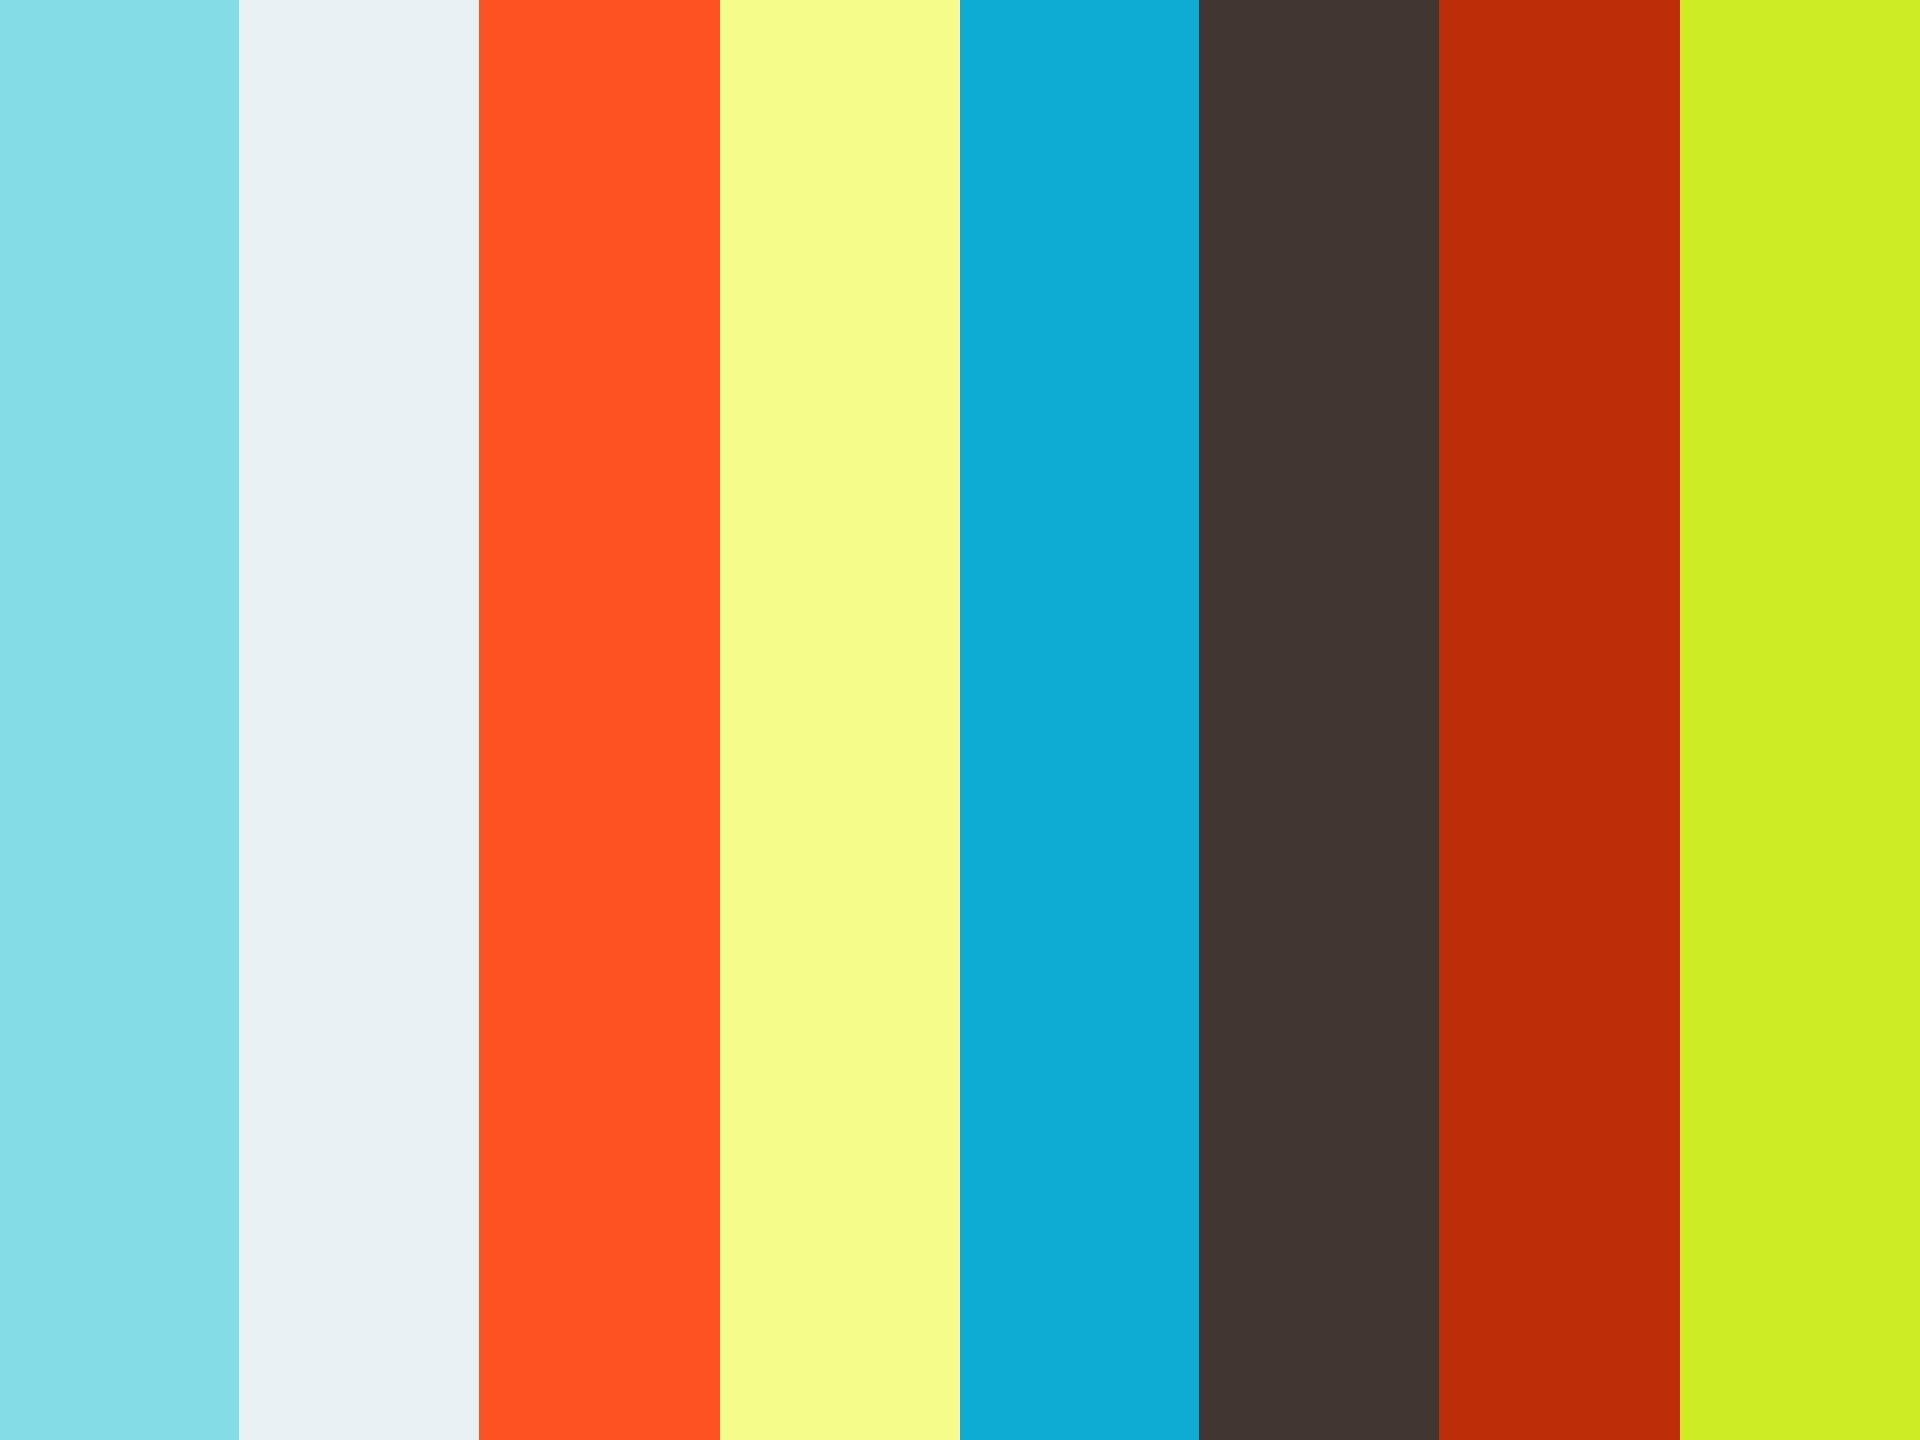 Laparoscopic TME: The Robotic Experience 2010